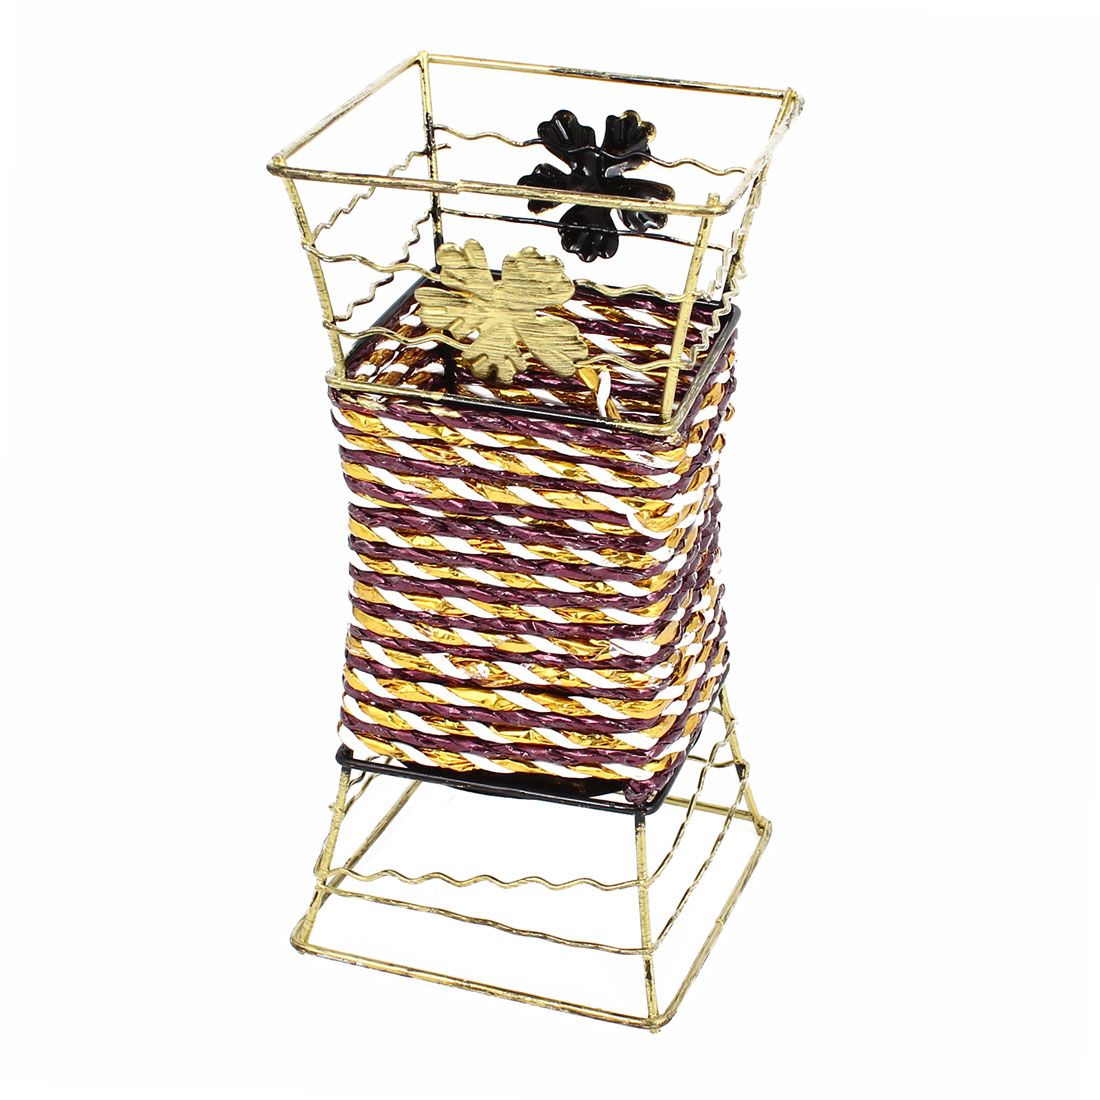 Bronze Tone Metal Frame Purple Woven Artificial Flowers Basket Desktop Decor